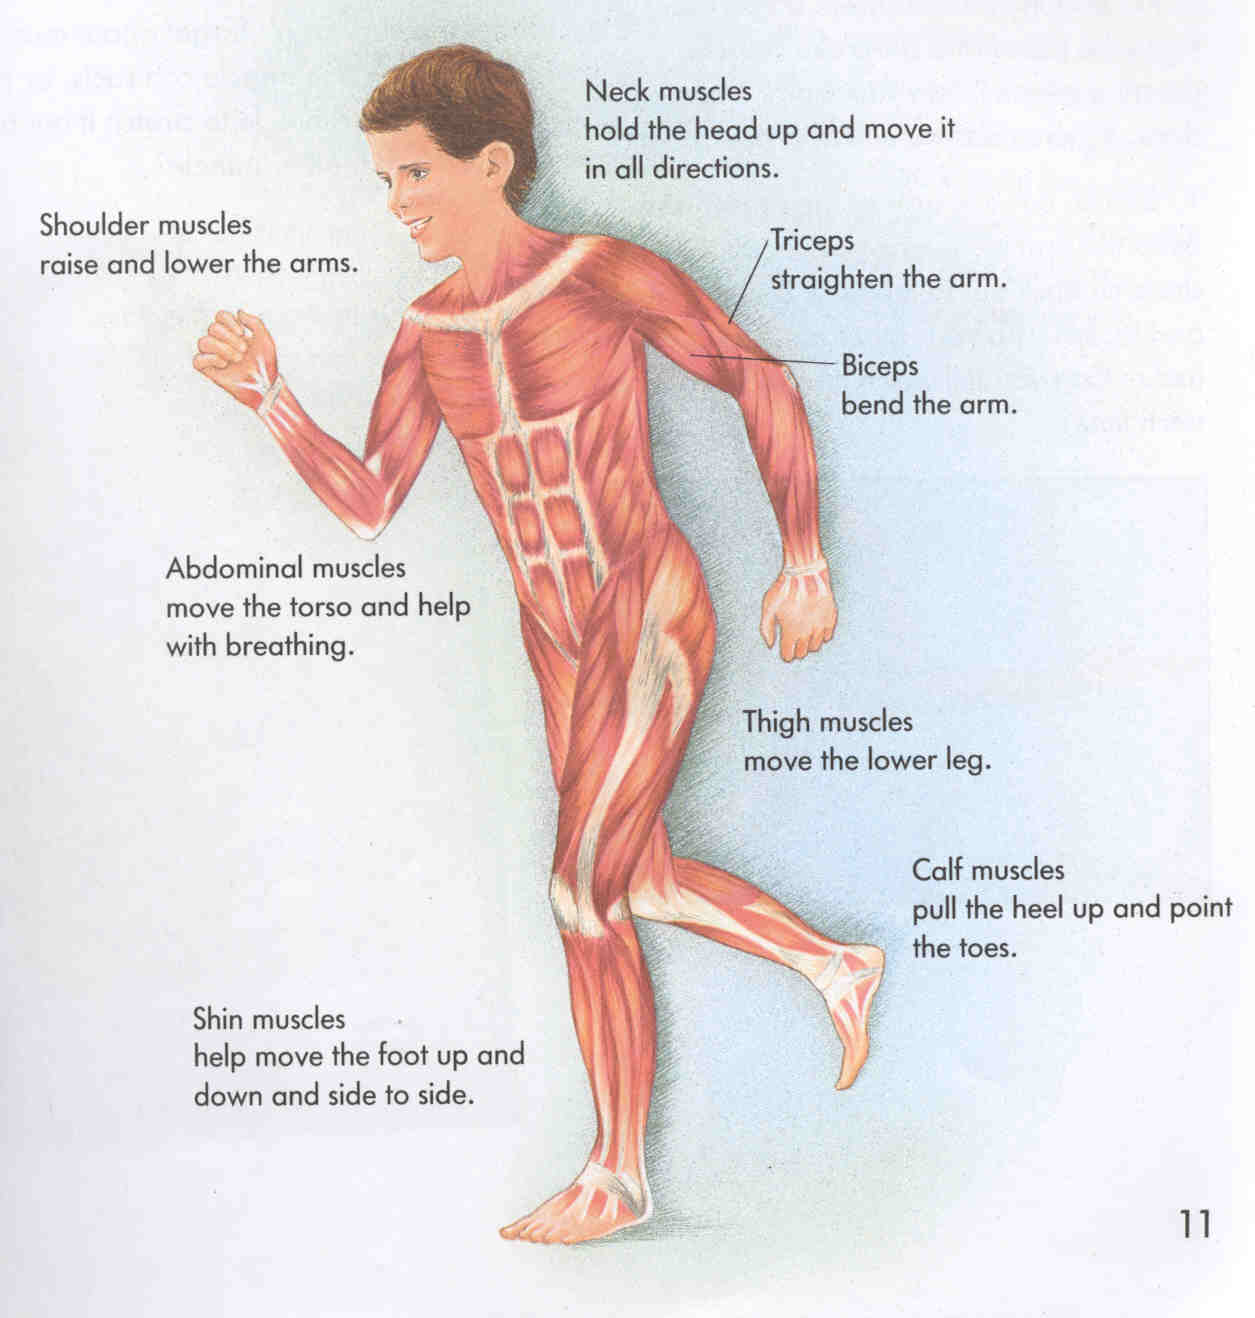 full human body muscle diagram – lickclick, Muscles